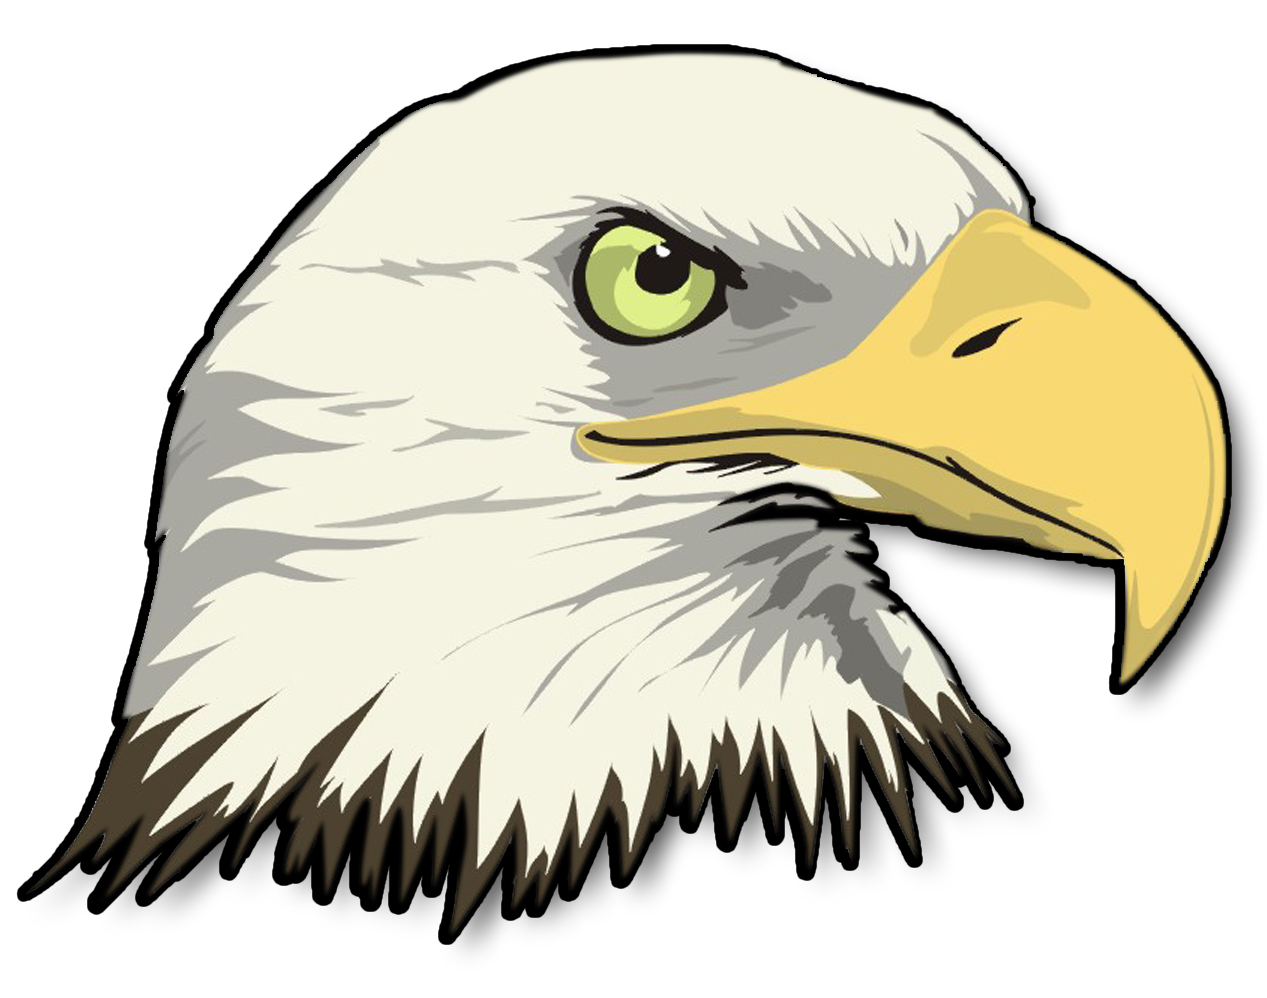 Bald Eagle clipart #10, Download drawings